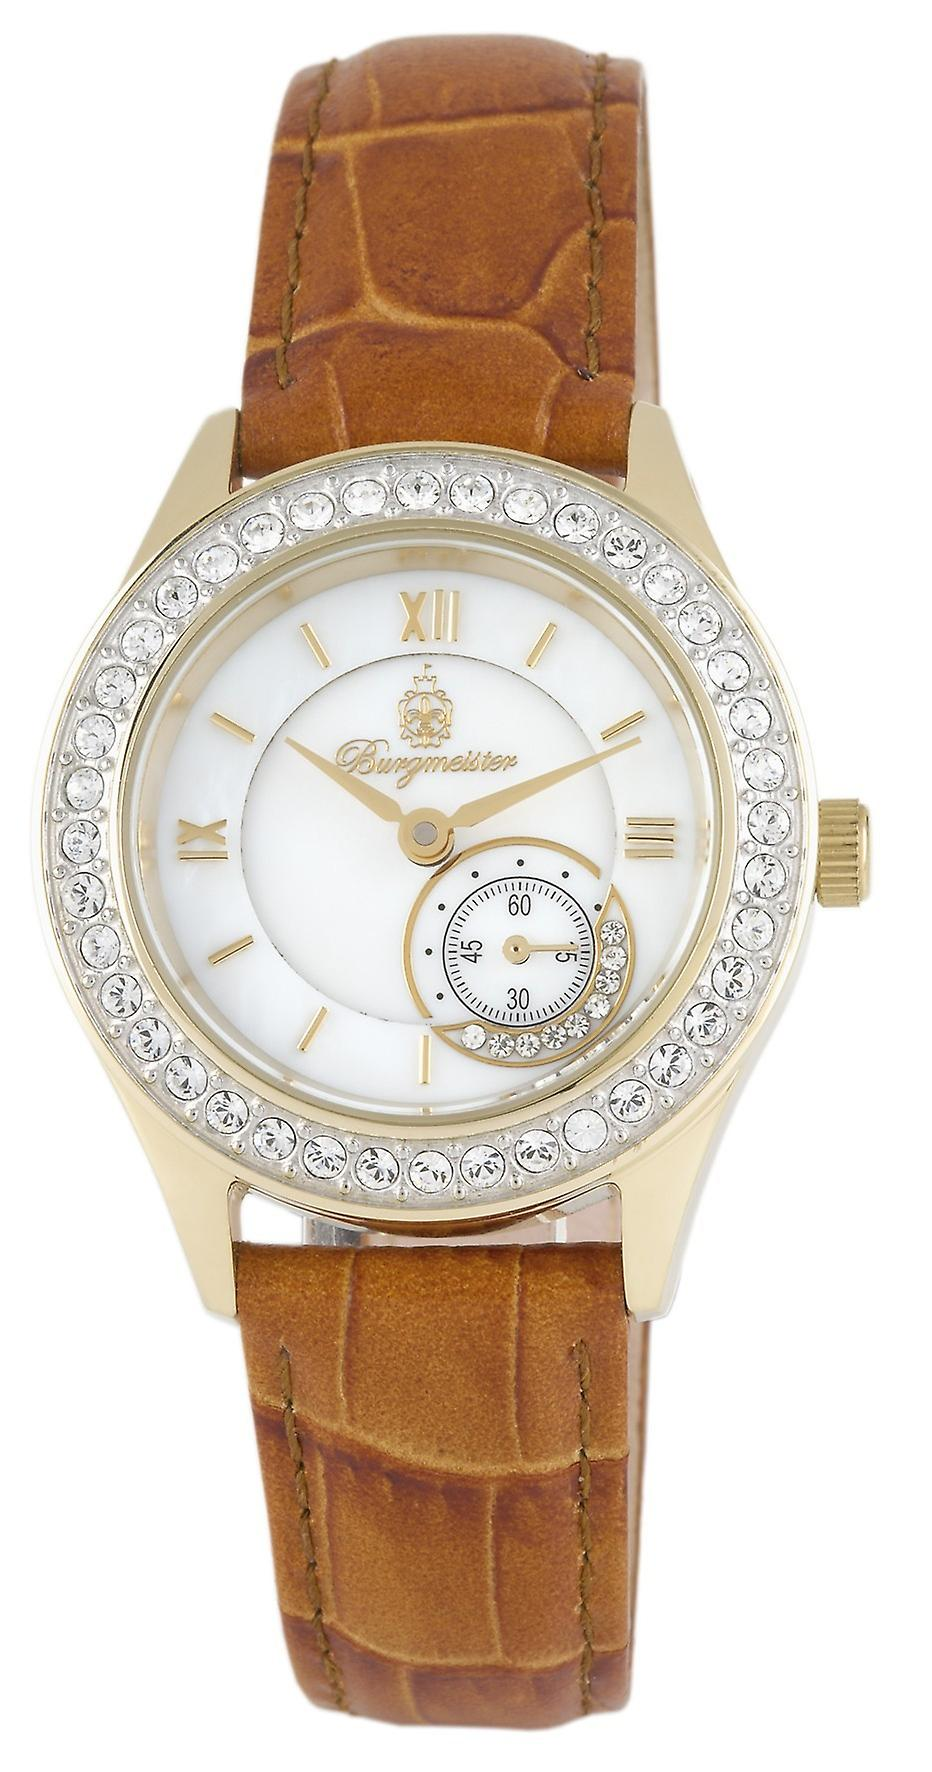 Burgmeister Domburg Ladies Automatic Watch BM508-285